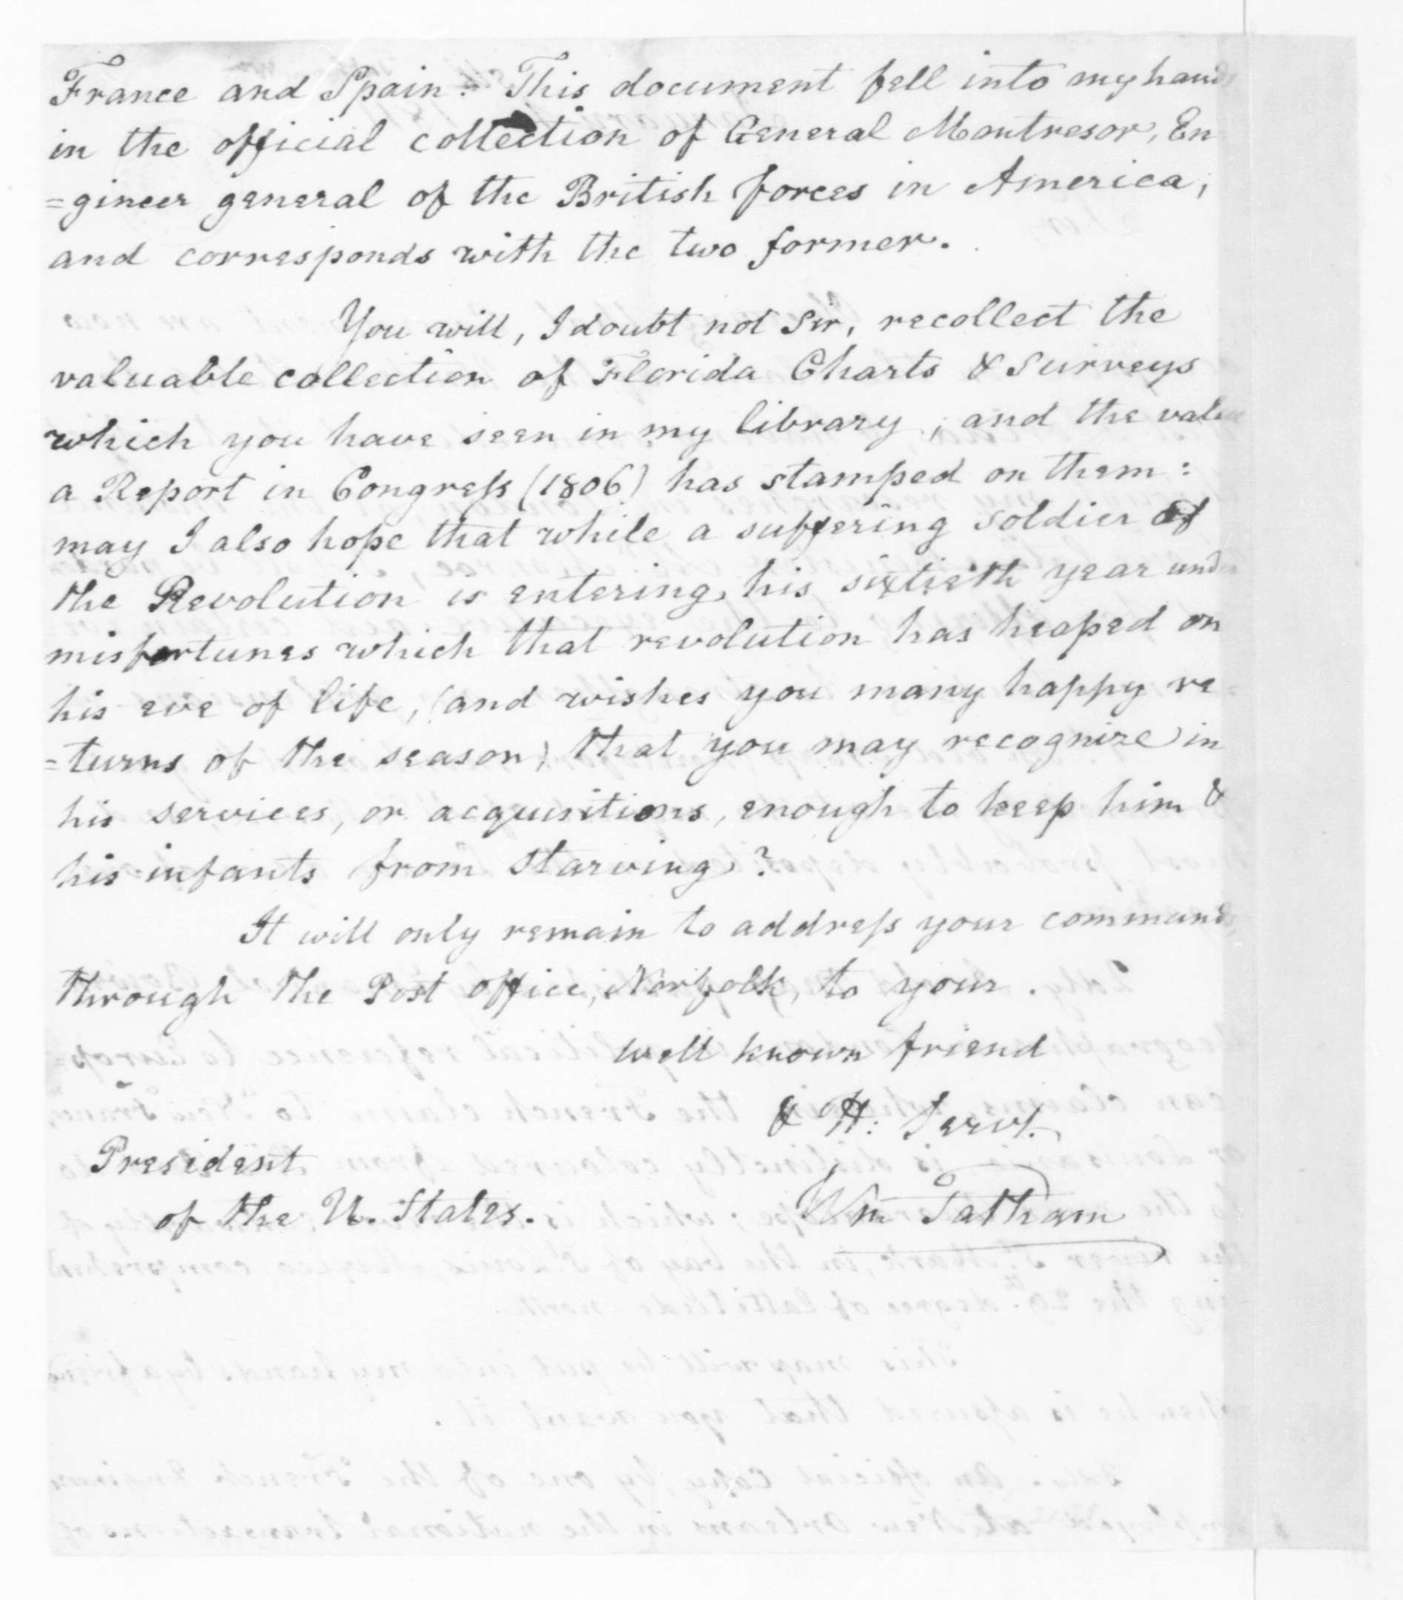 William Tatham to James Madison, January 1, 1811. With Copy.